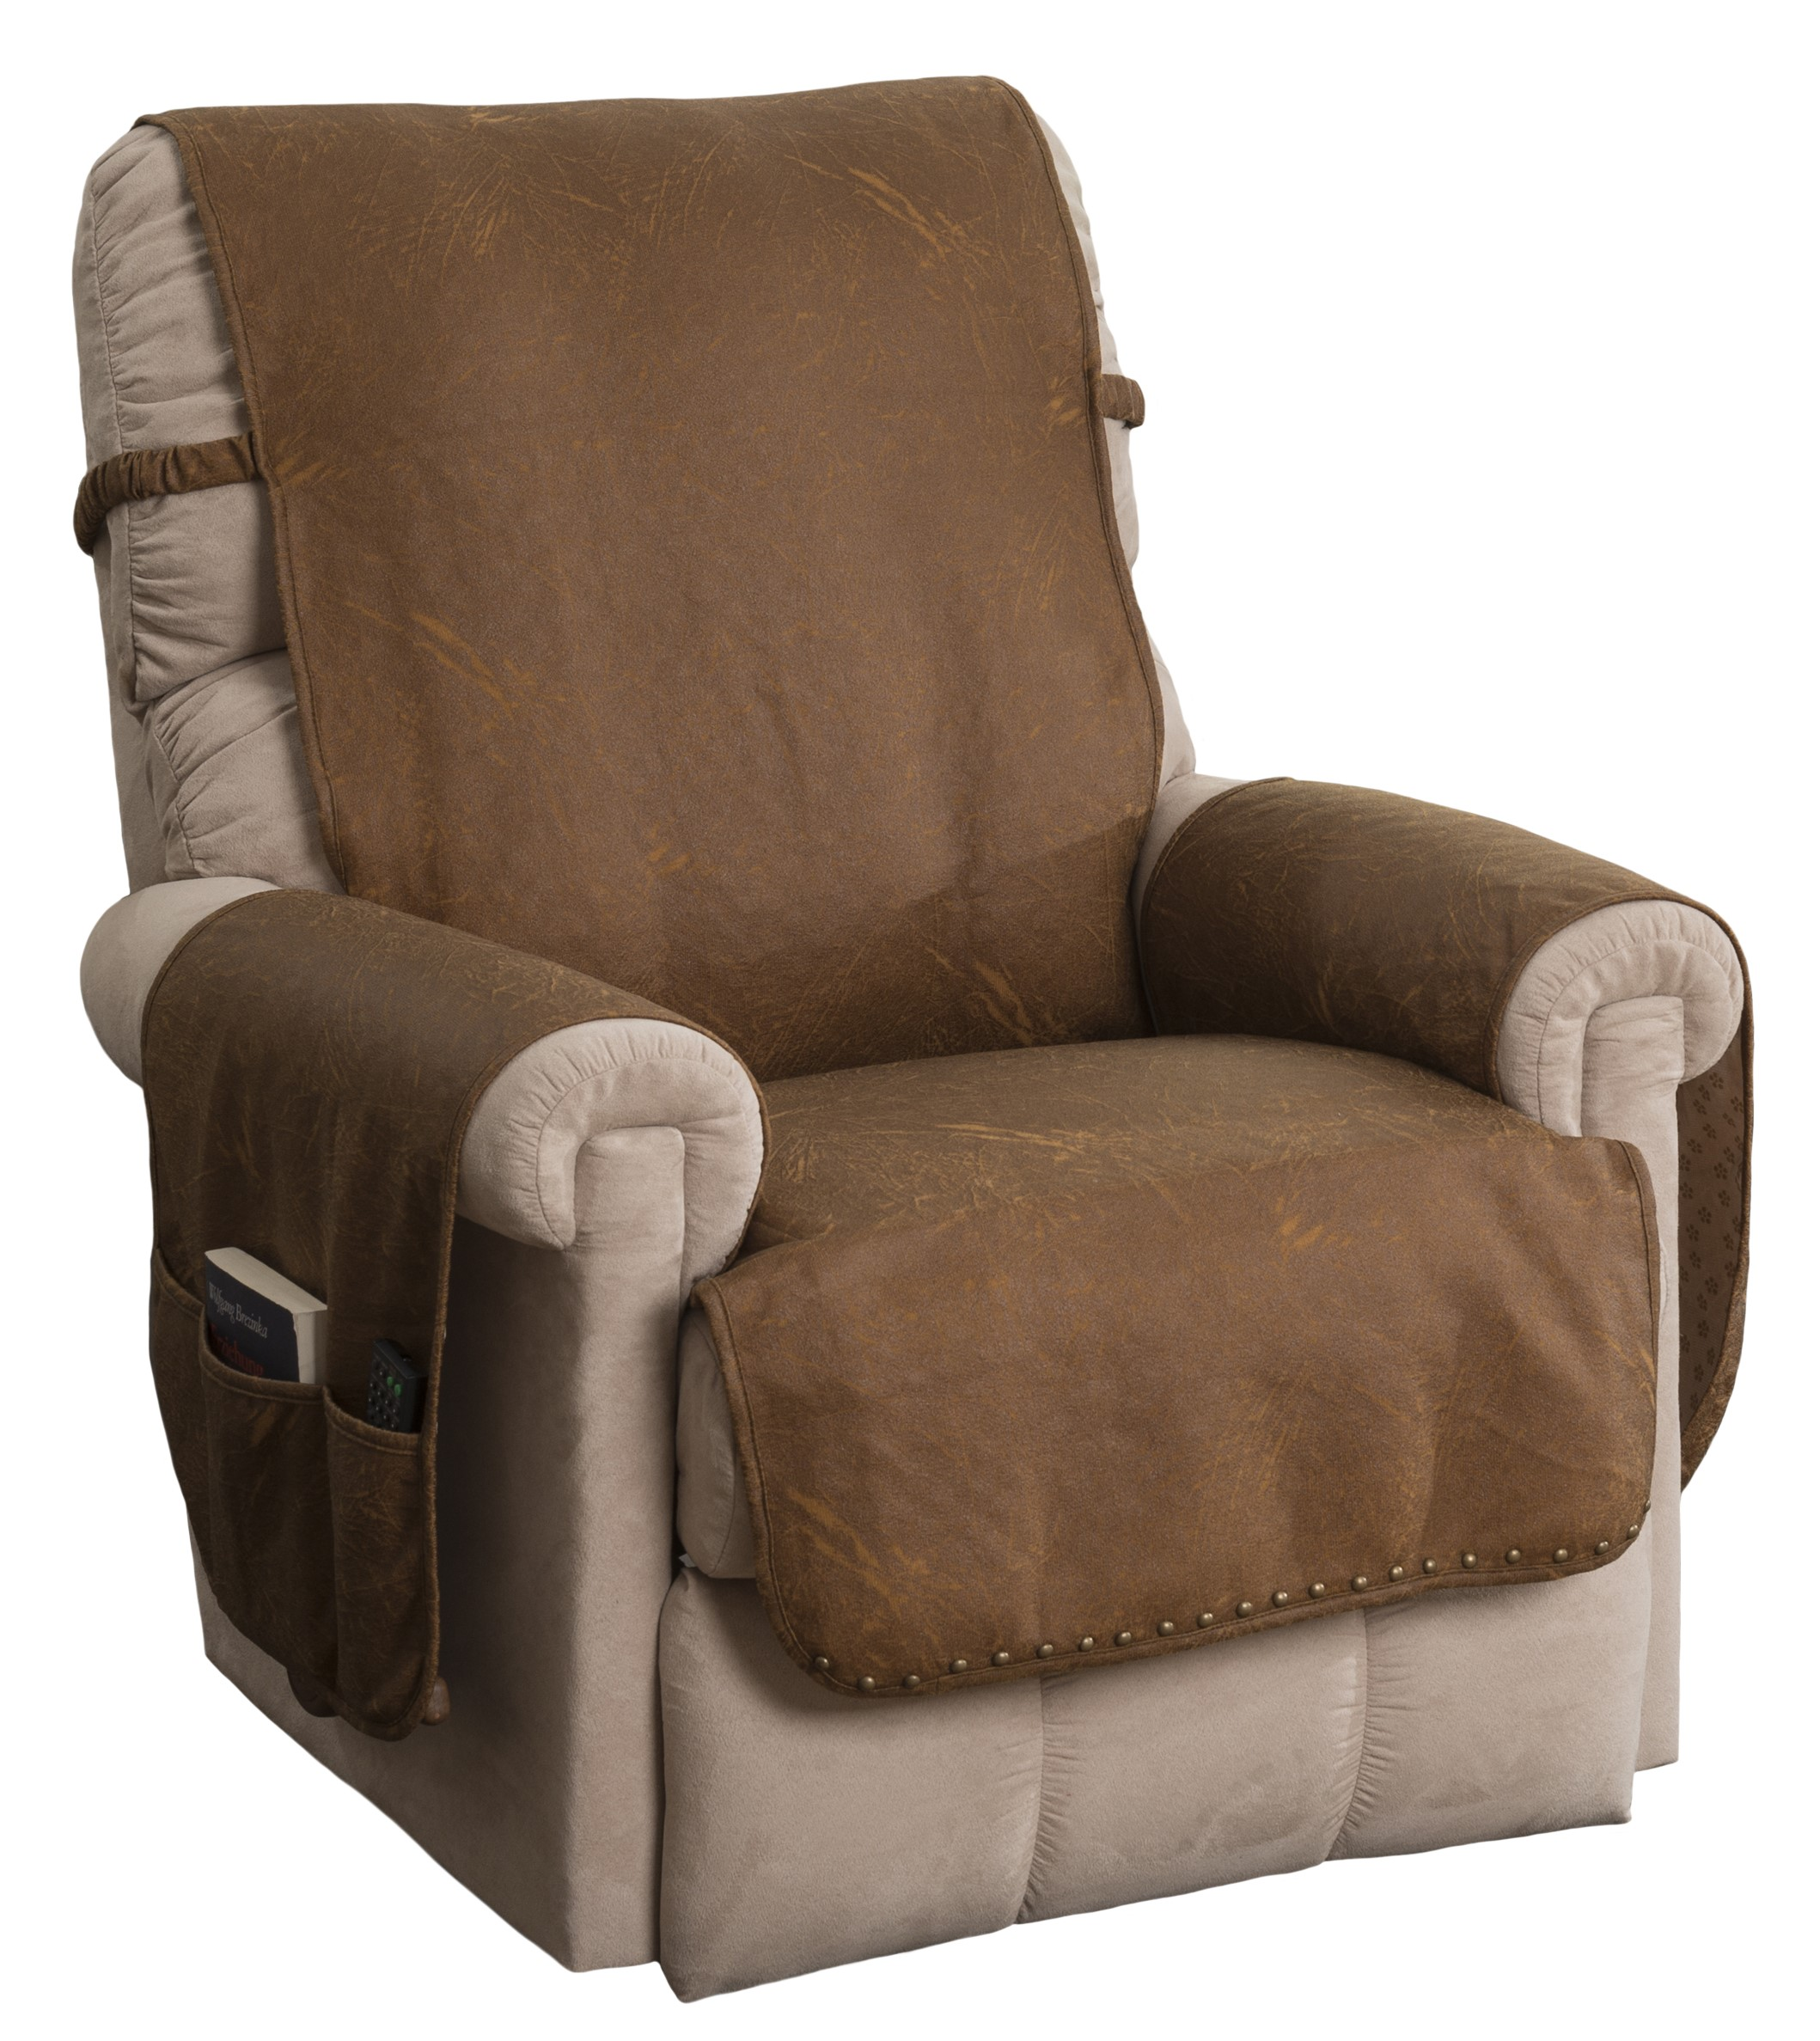 Innovative Textile Solutions Faux Leather Recliner Furniture